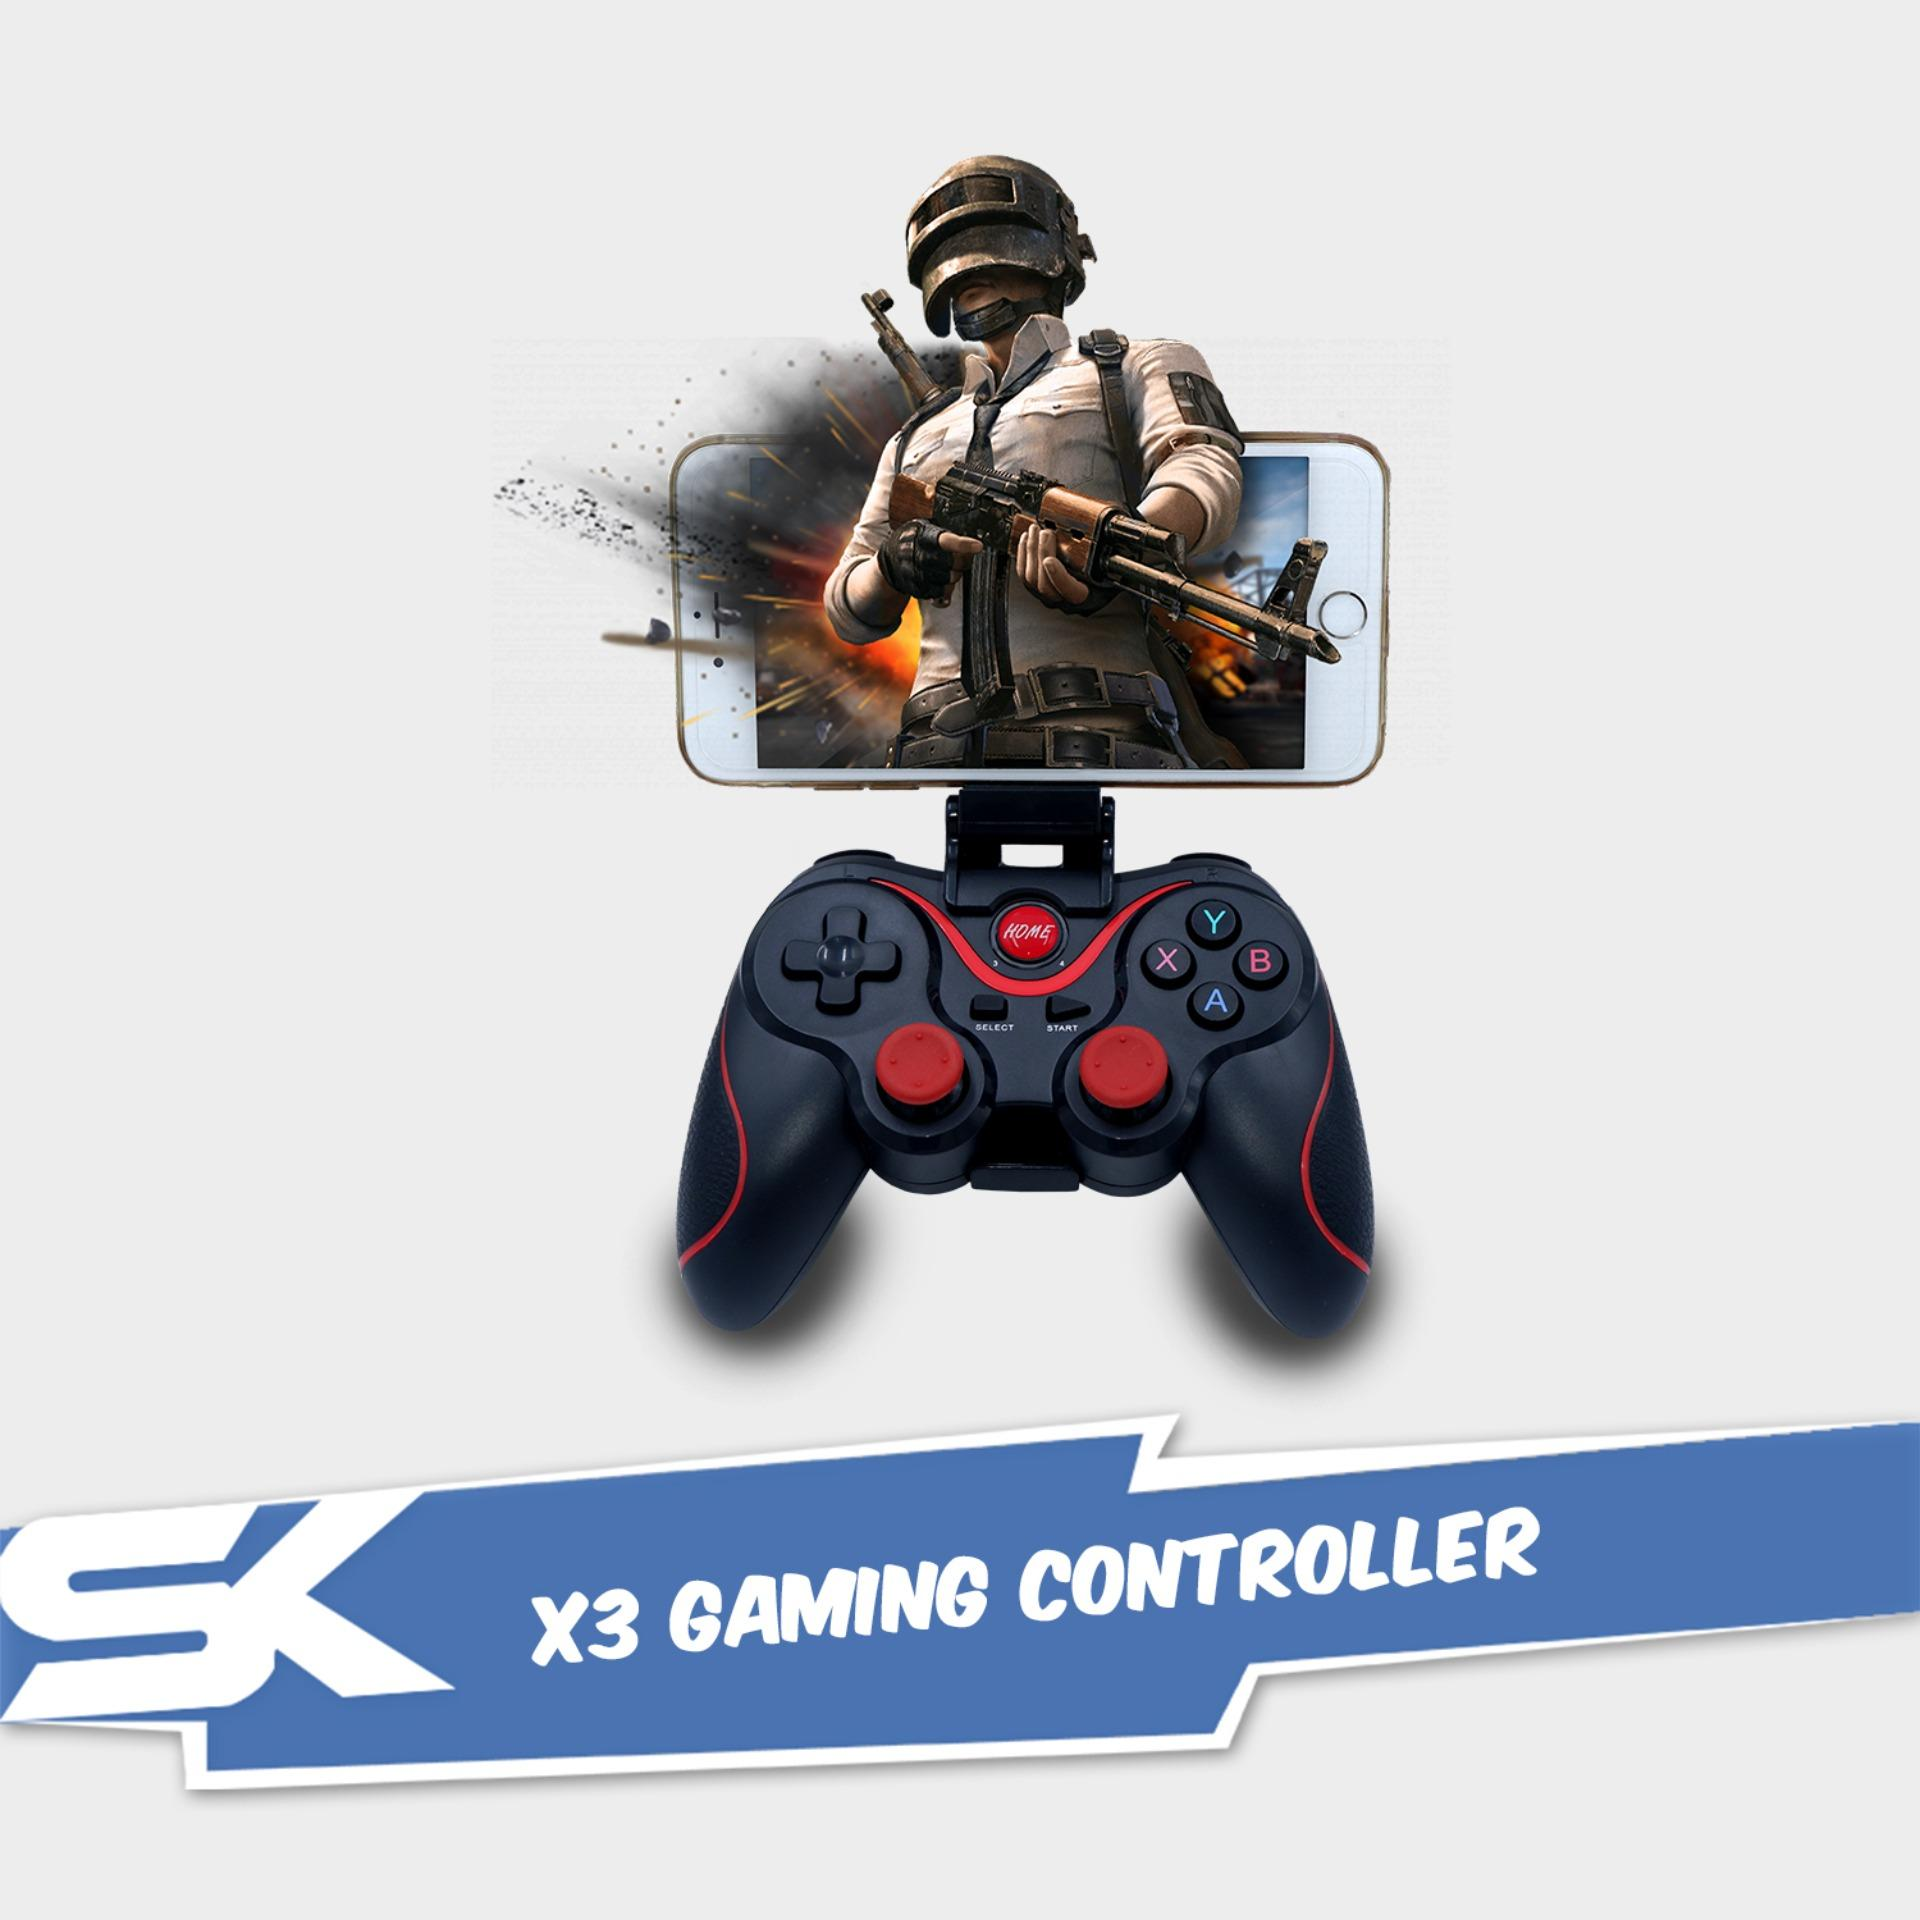 X3 Wireless Gaming Controller